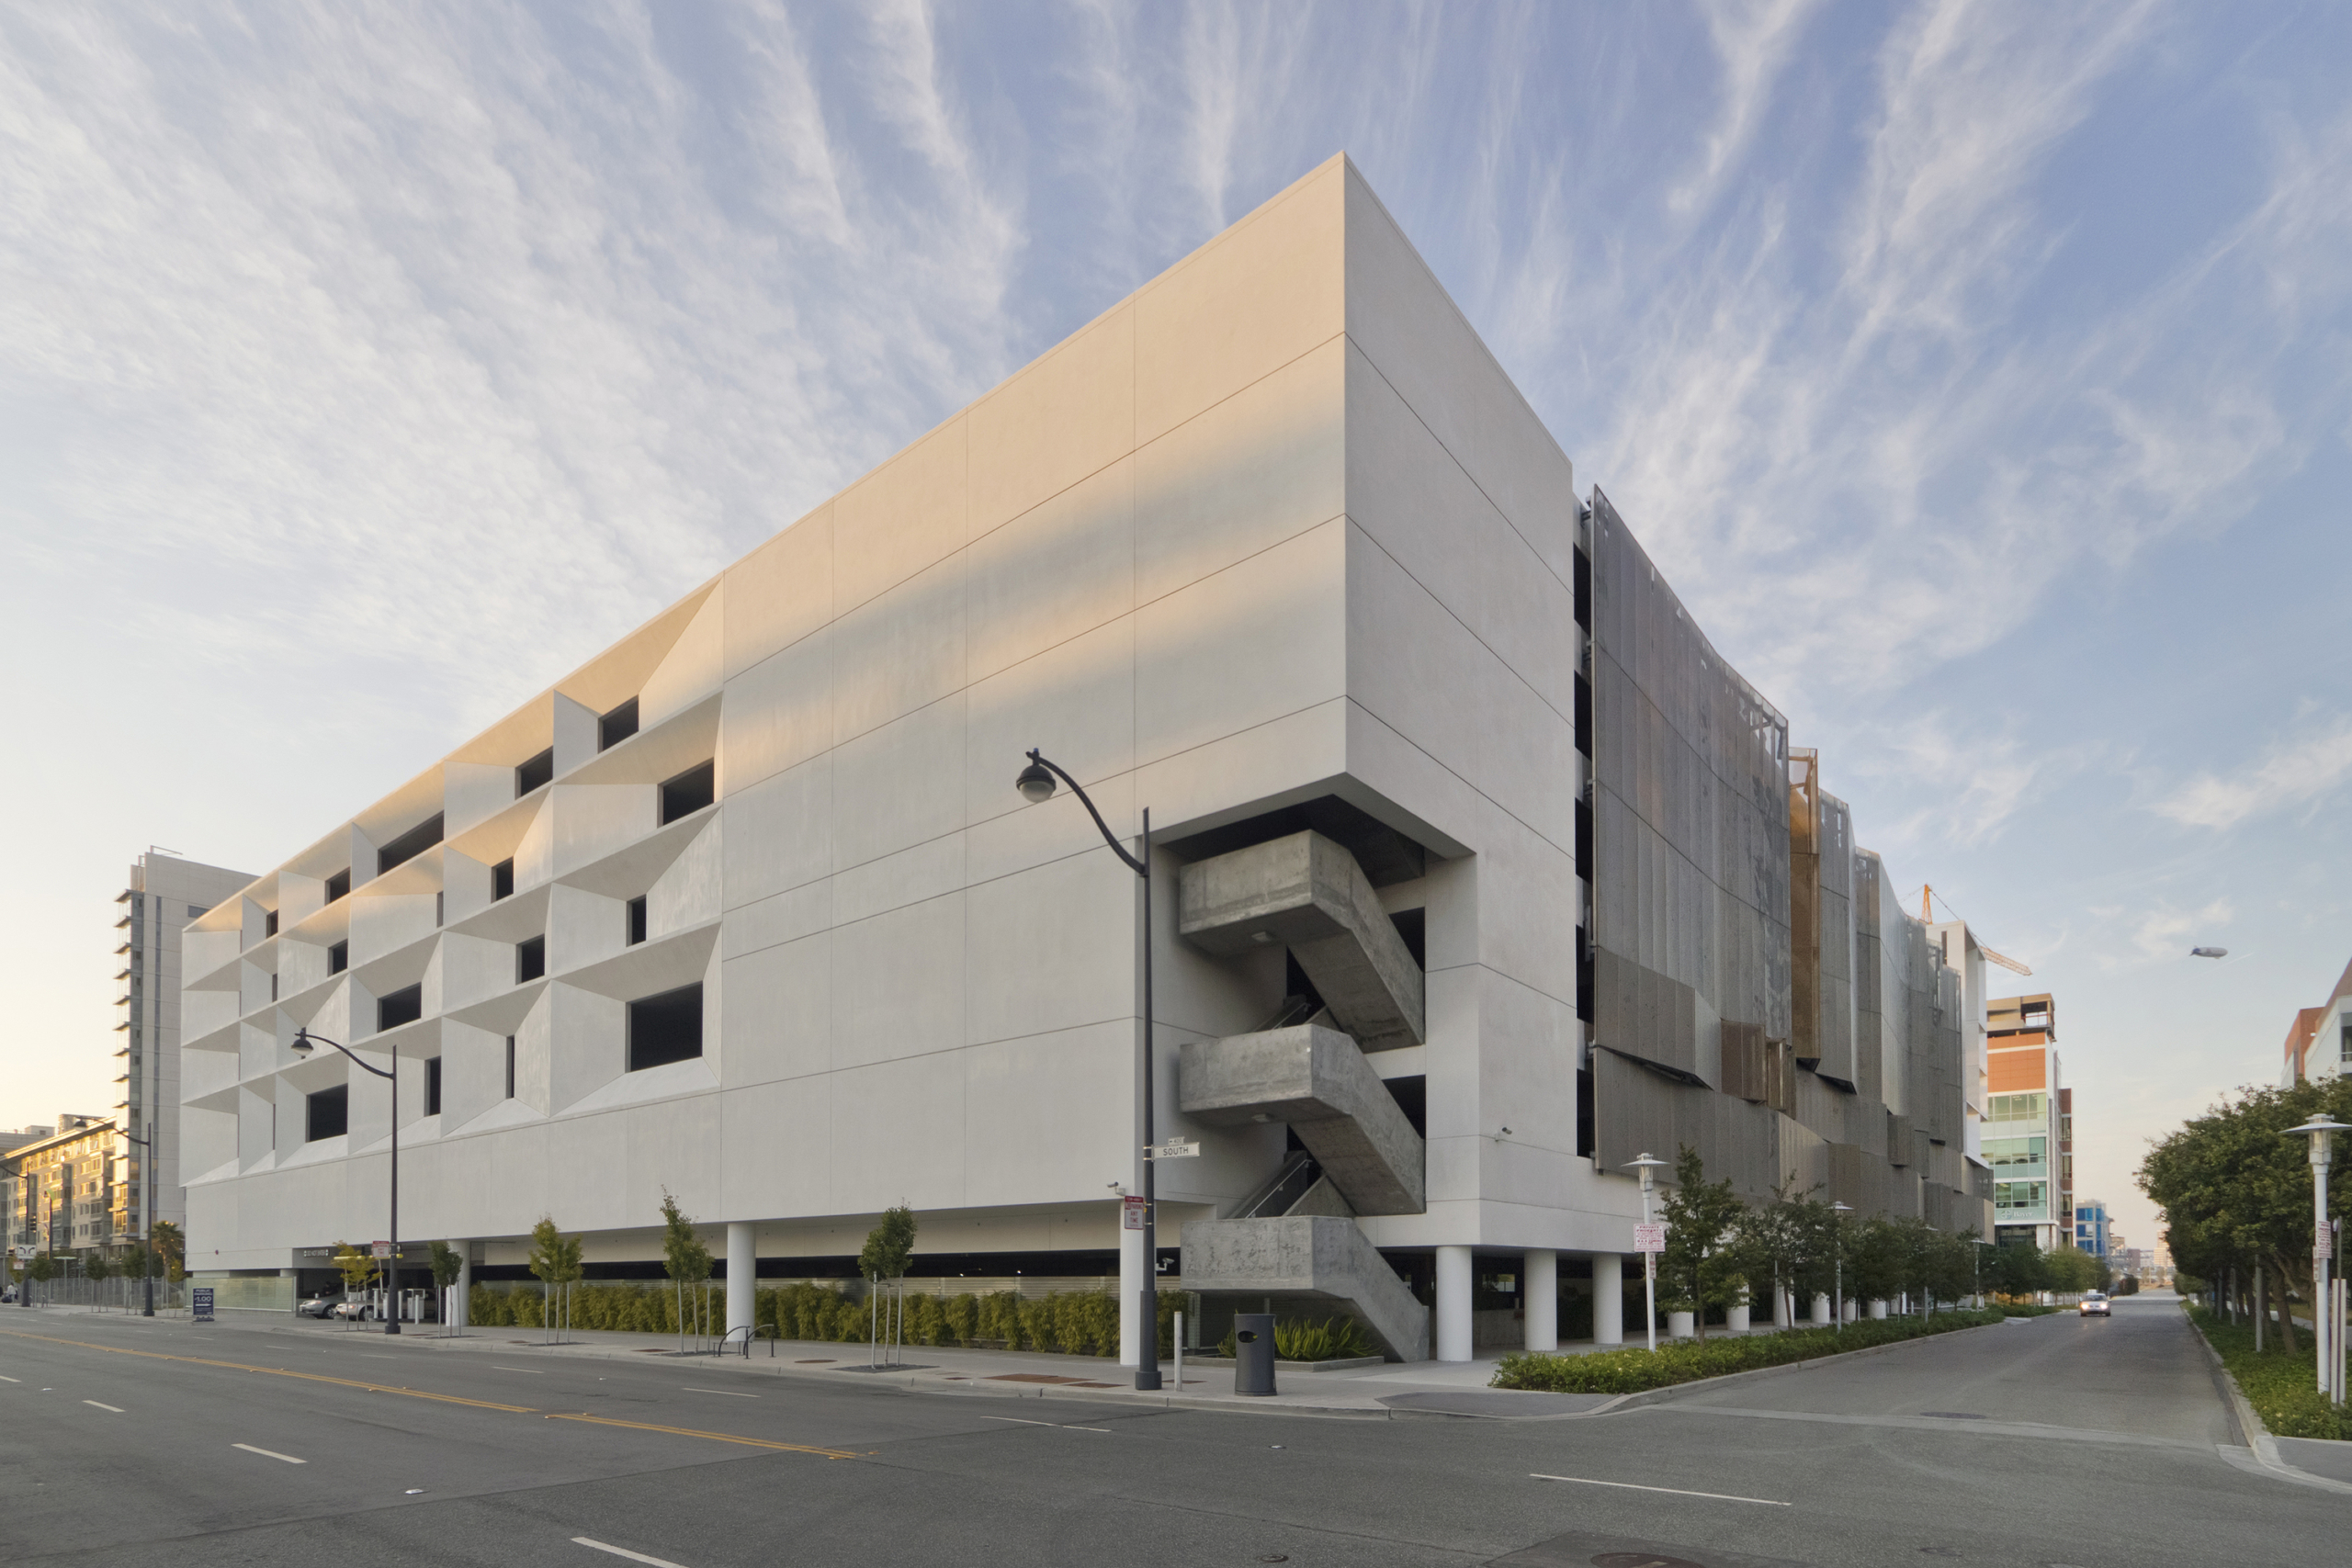 Mission Bay Block 27 Parking Structure at Alexandria.